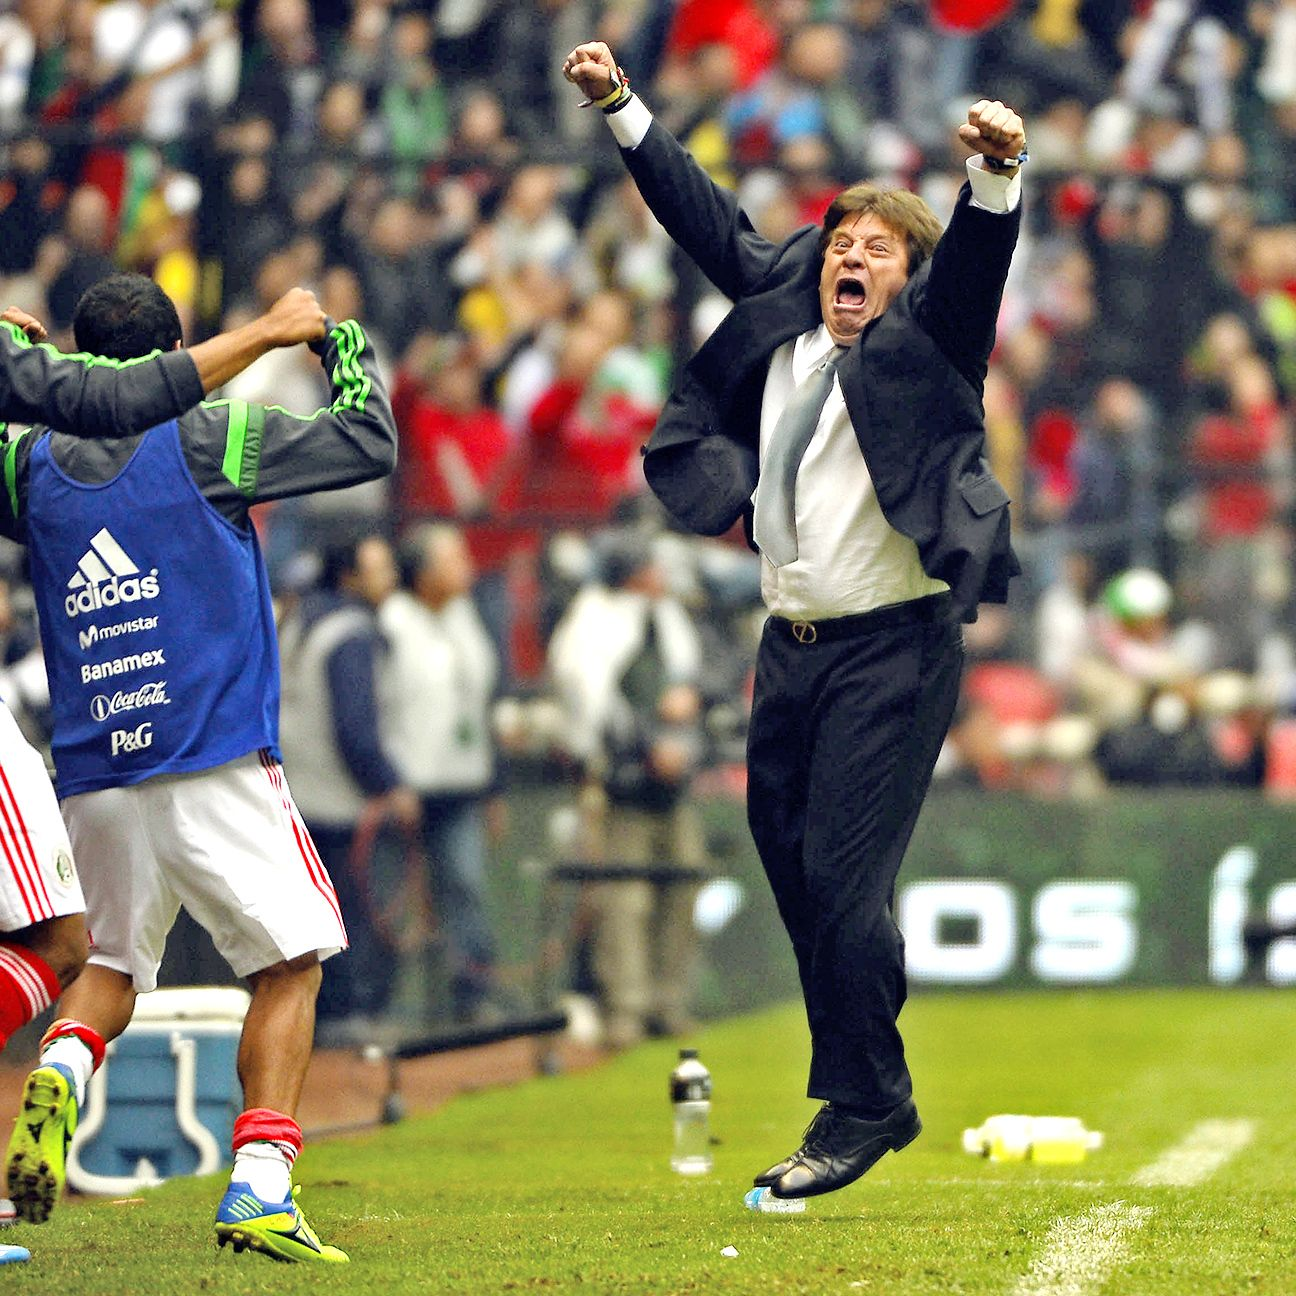 When Mexico was it its very lowest after a fortunate fourth-place finish in CONCACAF World Cup qualifying, Miguel Herrera instilled some badly needed swagger into <i>El Tri</i>.